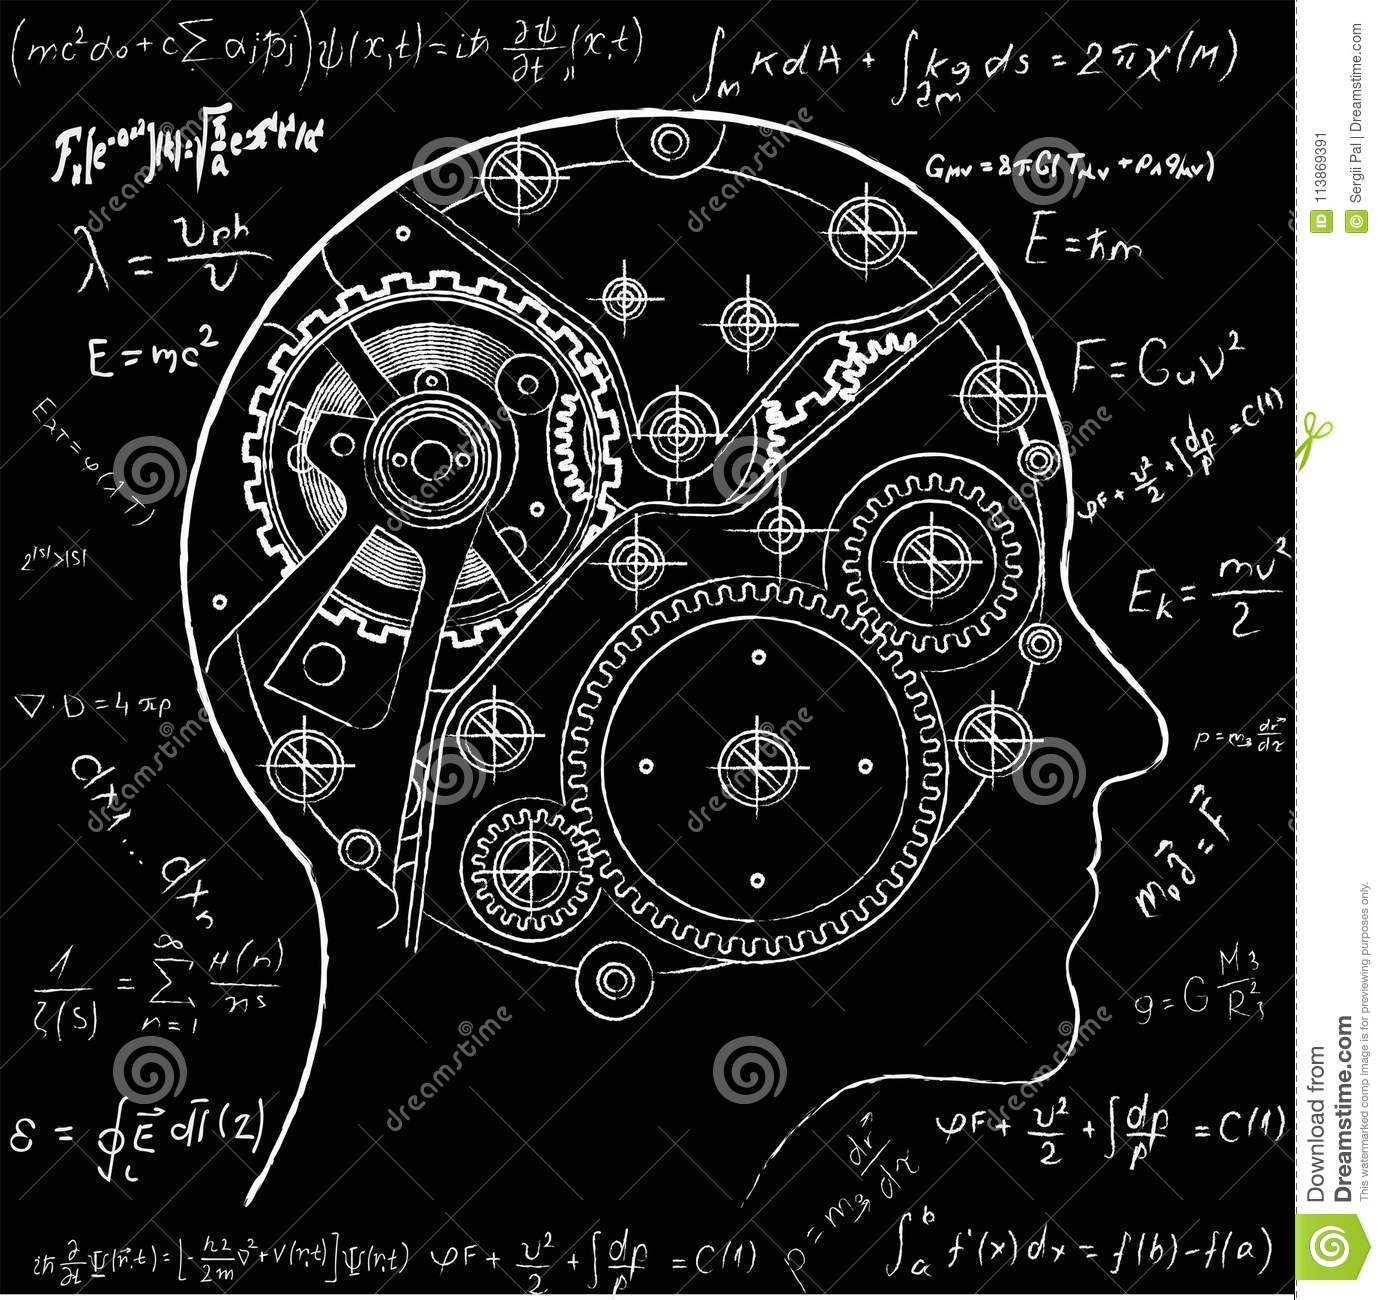 The mechanism of human thinking. It is depicted in the form of a clock mechanism with gears and screws located inside